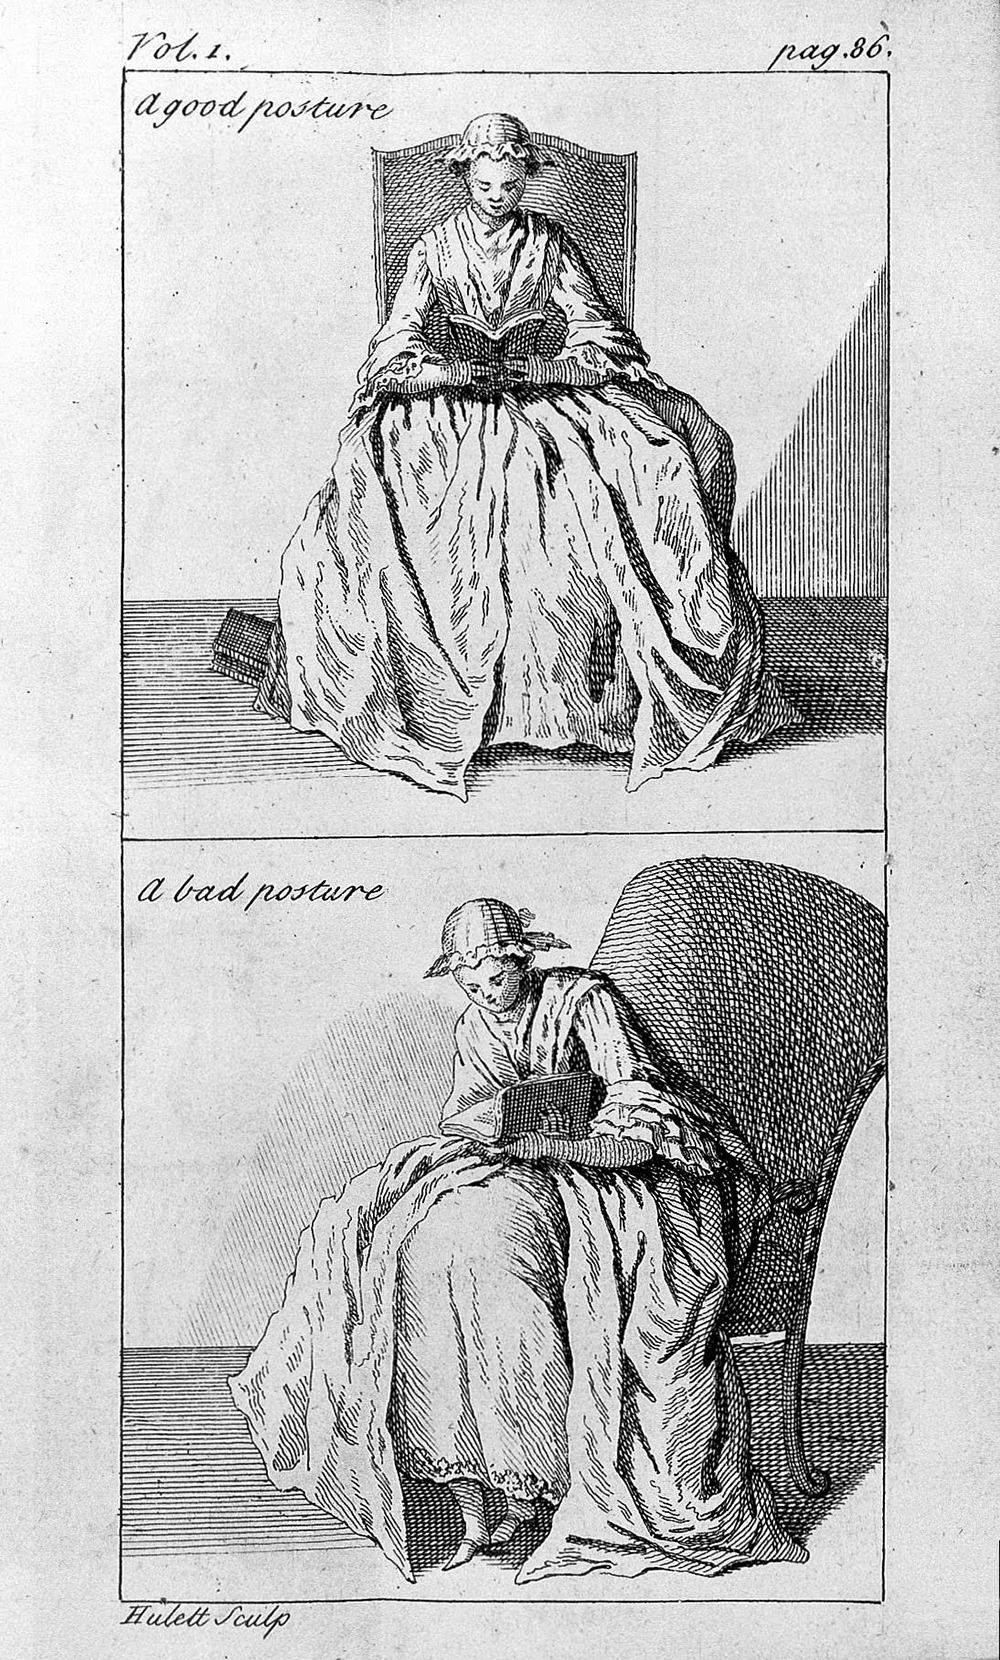 """""""The Correct Posture to Read,"""" by James Hulett, 1743. From Nicolas Andry de Bois-Regard, """"Orthopedia or the Art of Correcting and Preventing Deformities in Children."""" Wellcome Library, London."""